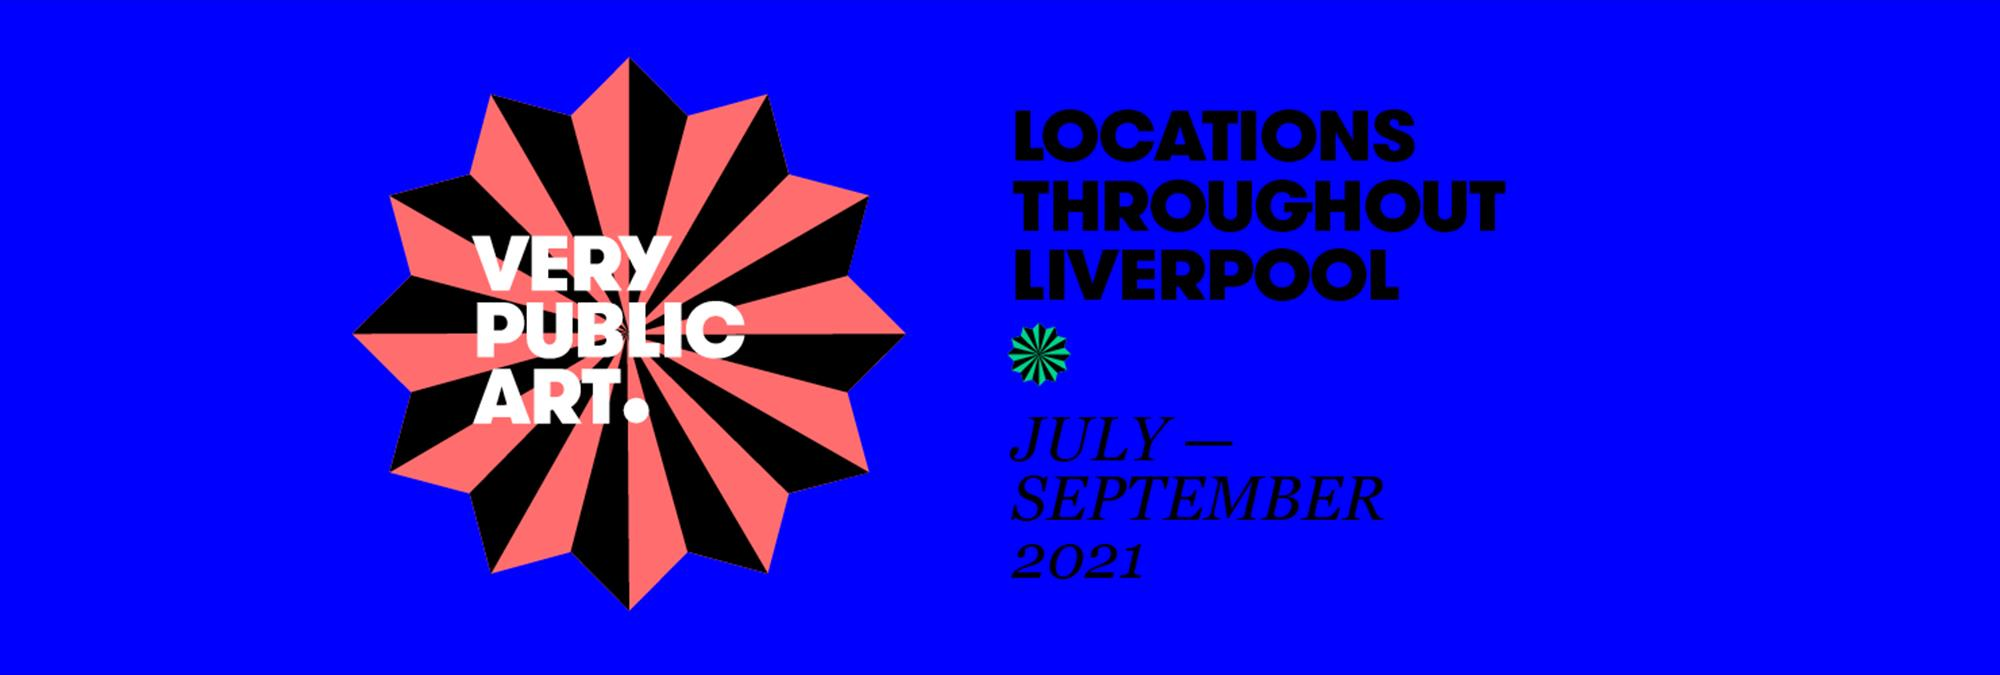 An electric blue background with the words 'Very Public Art, Liverpool July - September 2021' - The logo for the event is peach and black.